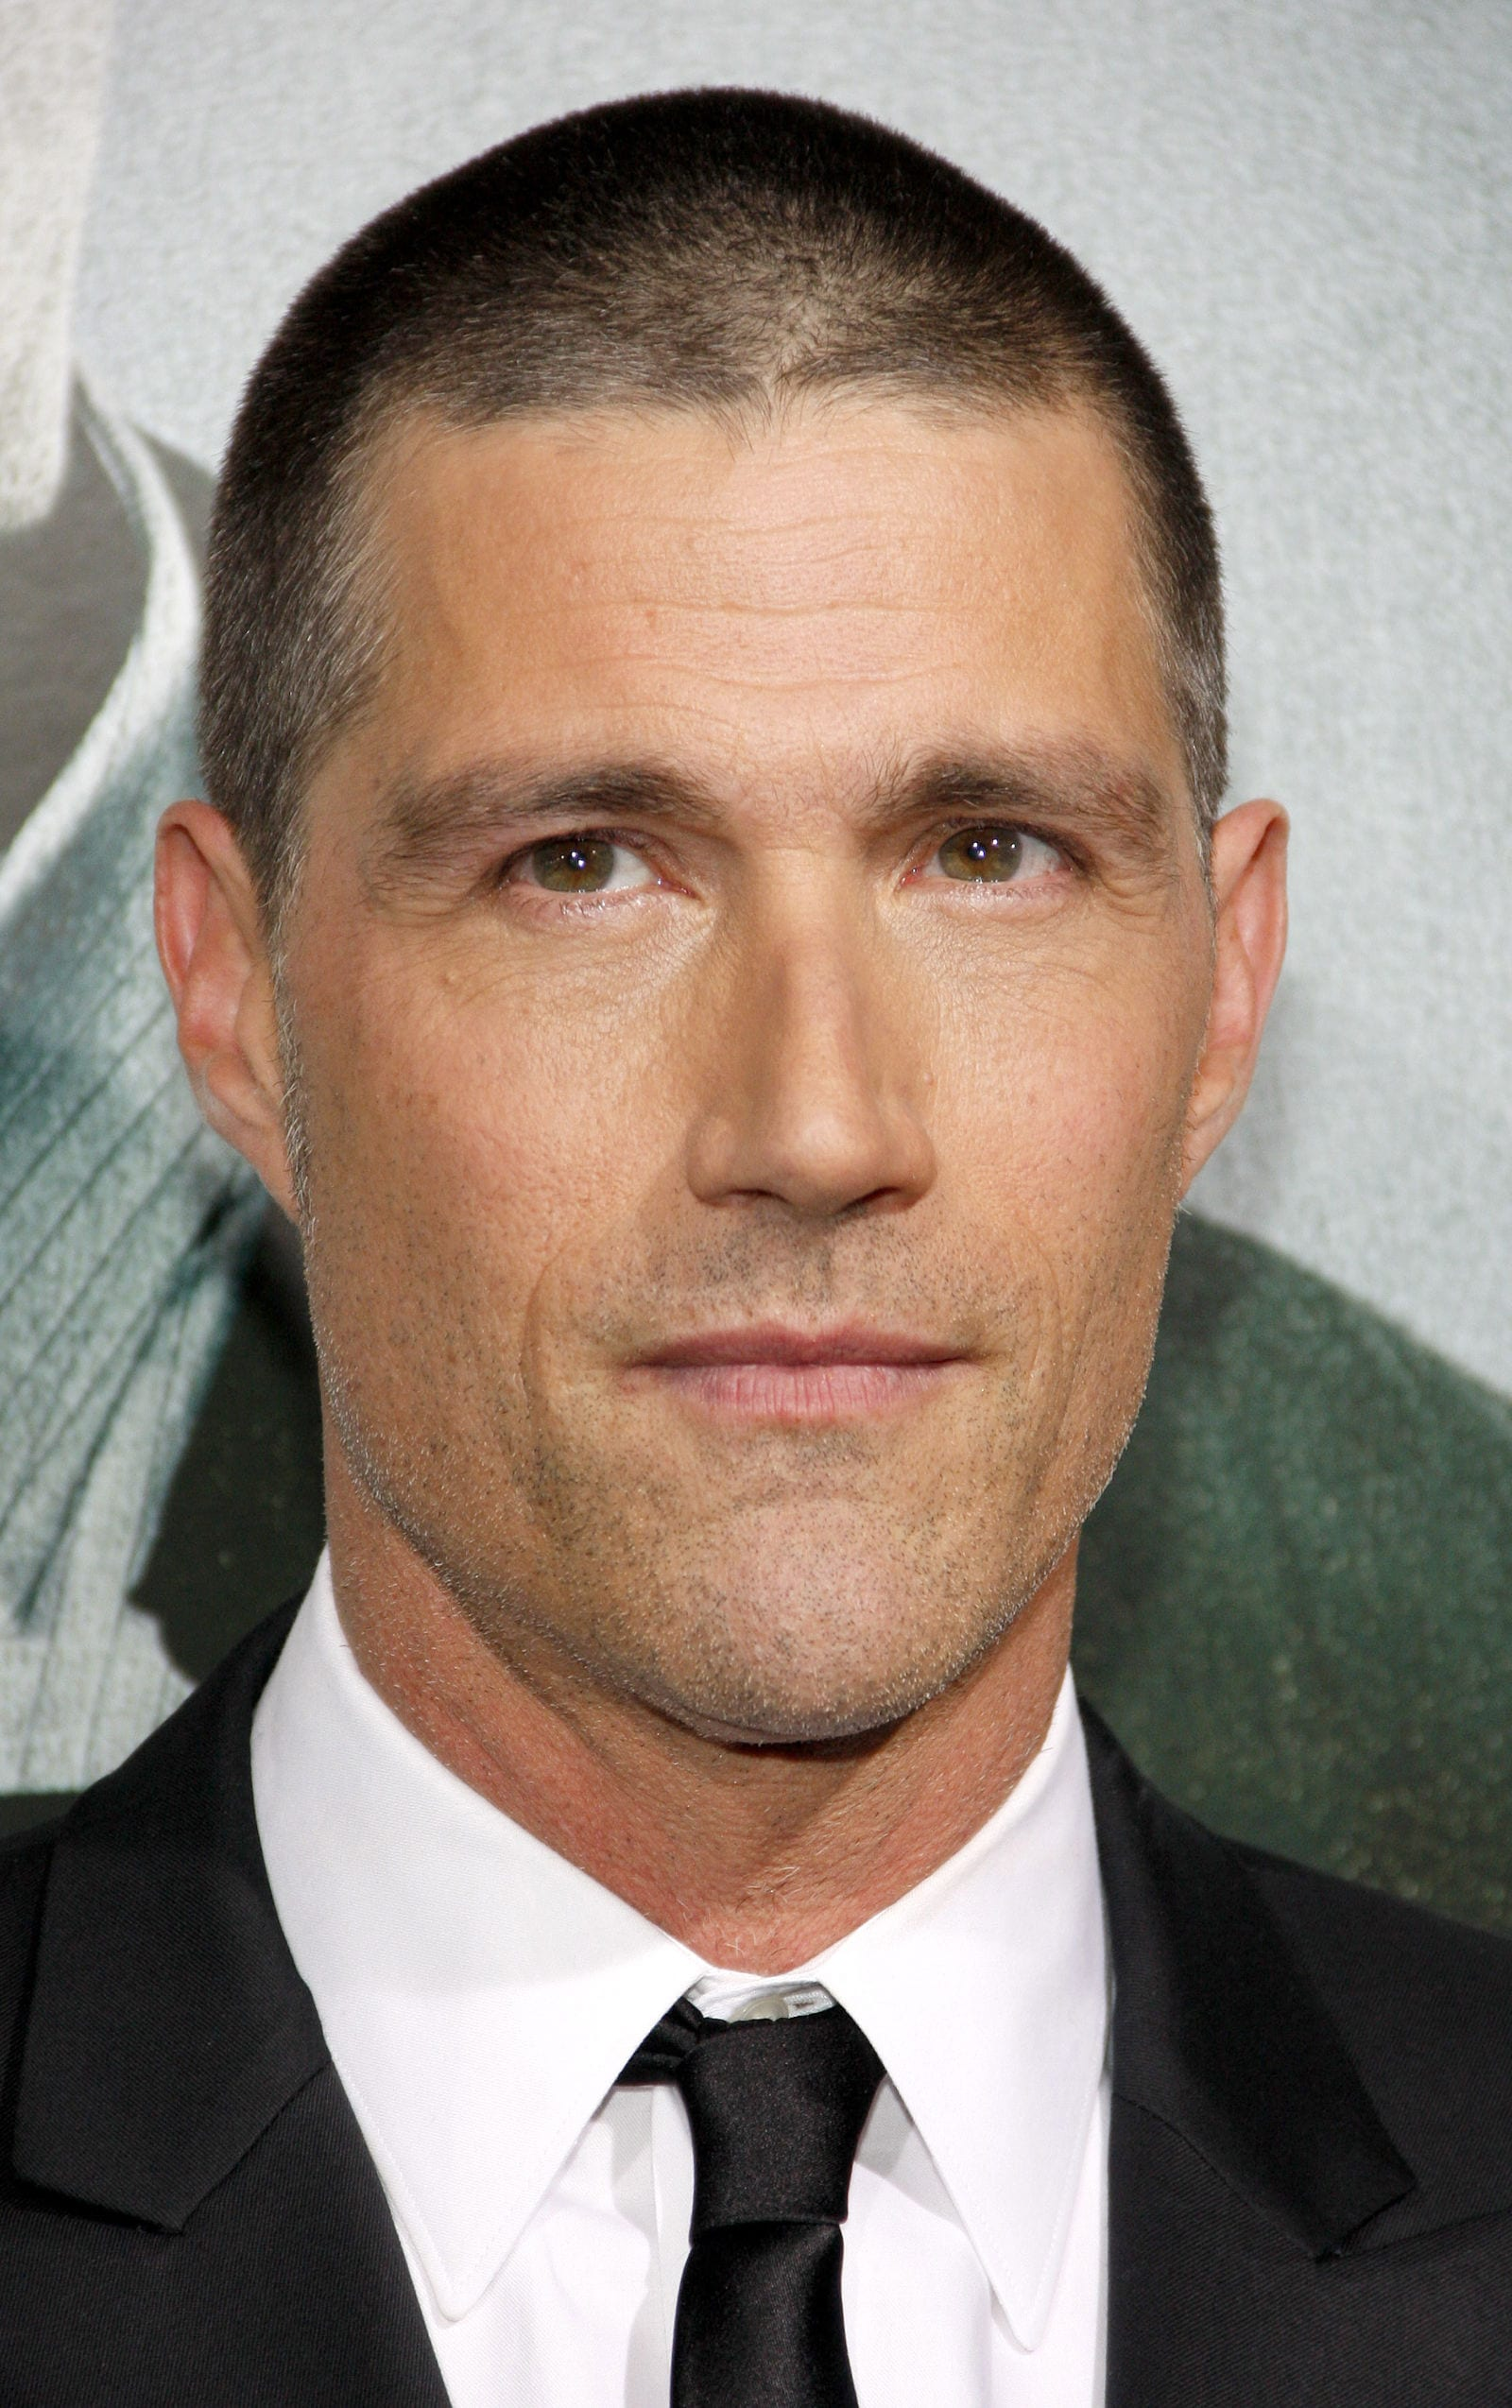 19 awesome military haircuts for men matthew fox butch cut urmus Choice Image